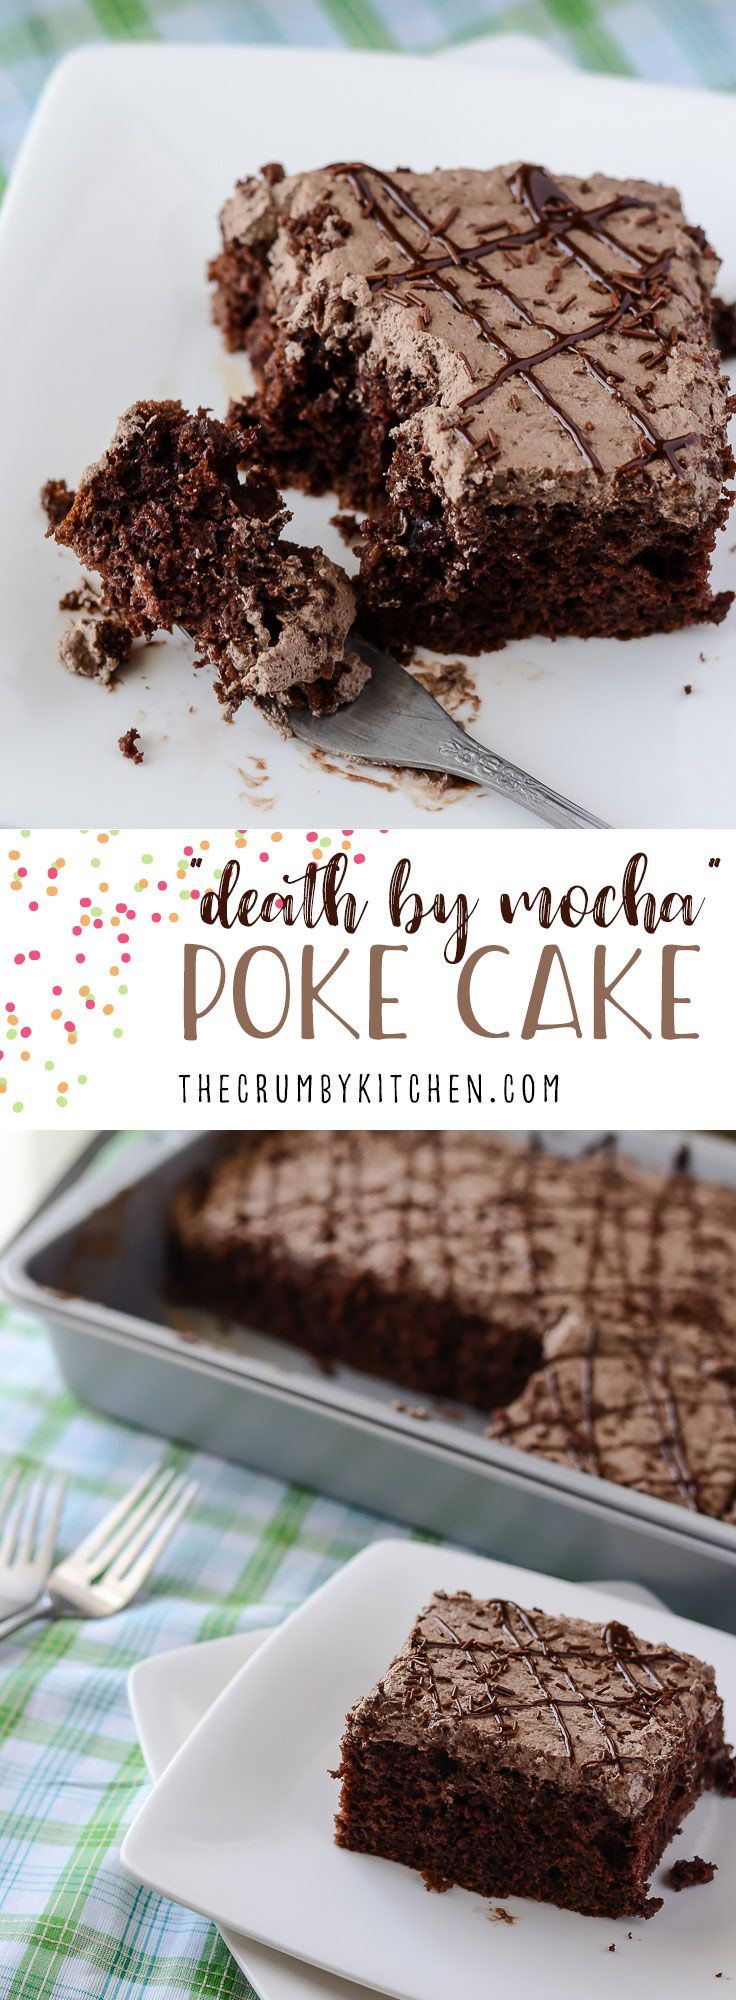 This Death By Mocha Poke Cake is a devilish little chocolate cake, infused and topped with Irish cream, vanilla bean, and the World's Strongest Coffee! #chocolate #cake #recipe #mocha #coffee #recipes #dessert #pokecake #irishcream